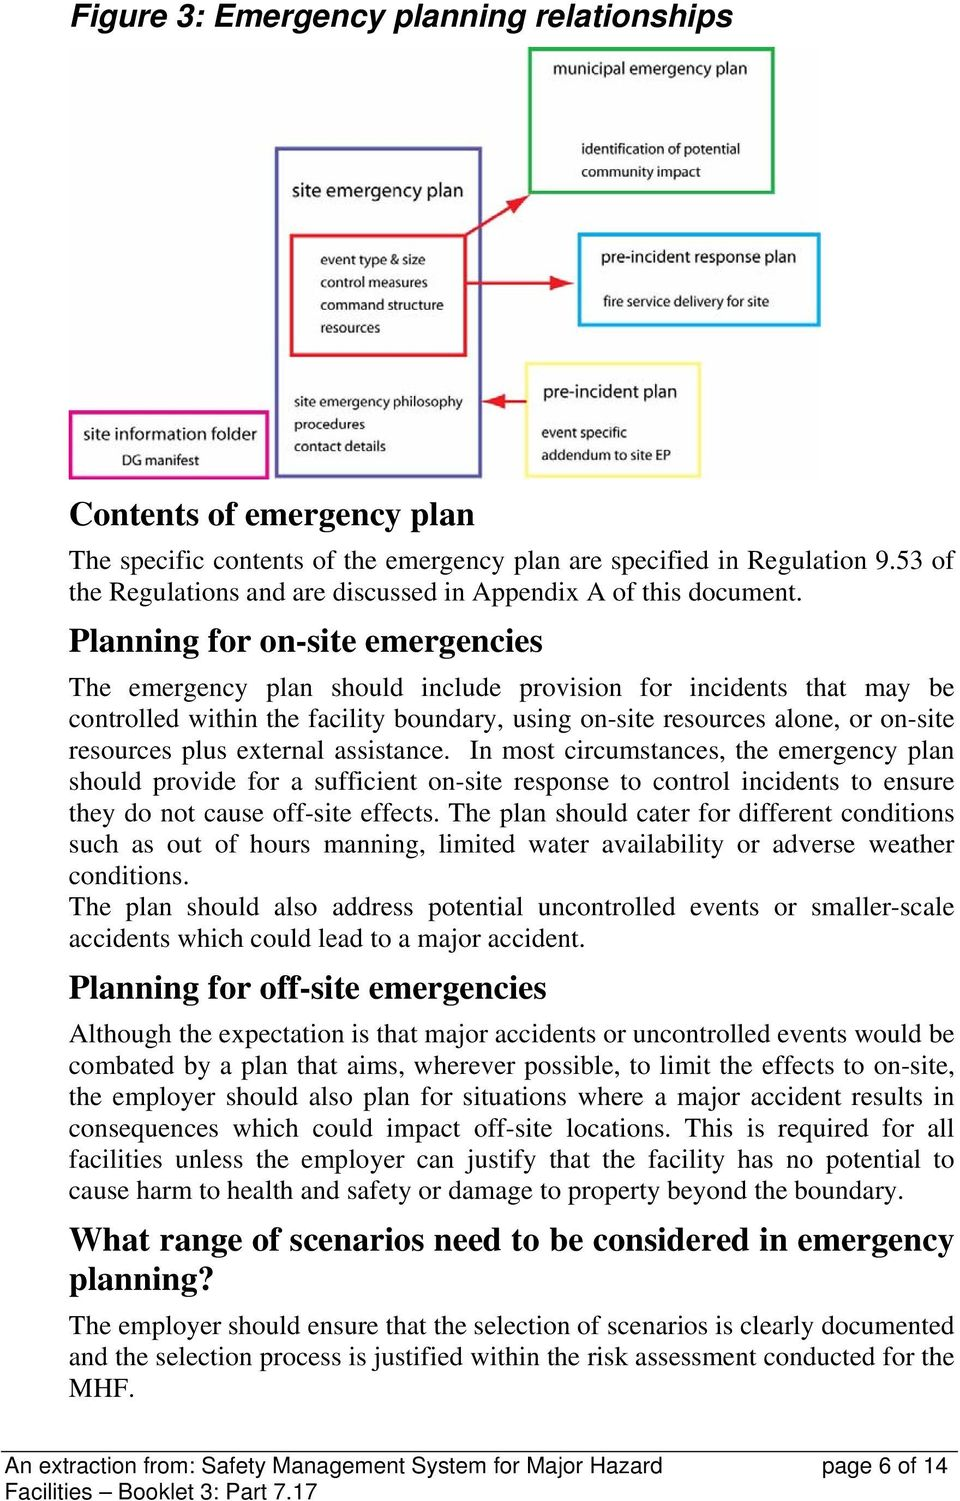 Planning for on-site emergencies The emergency plan should include provision for incidents that may be controlled within the facility boundary, using on-site resources alone, or on-site resources